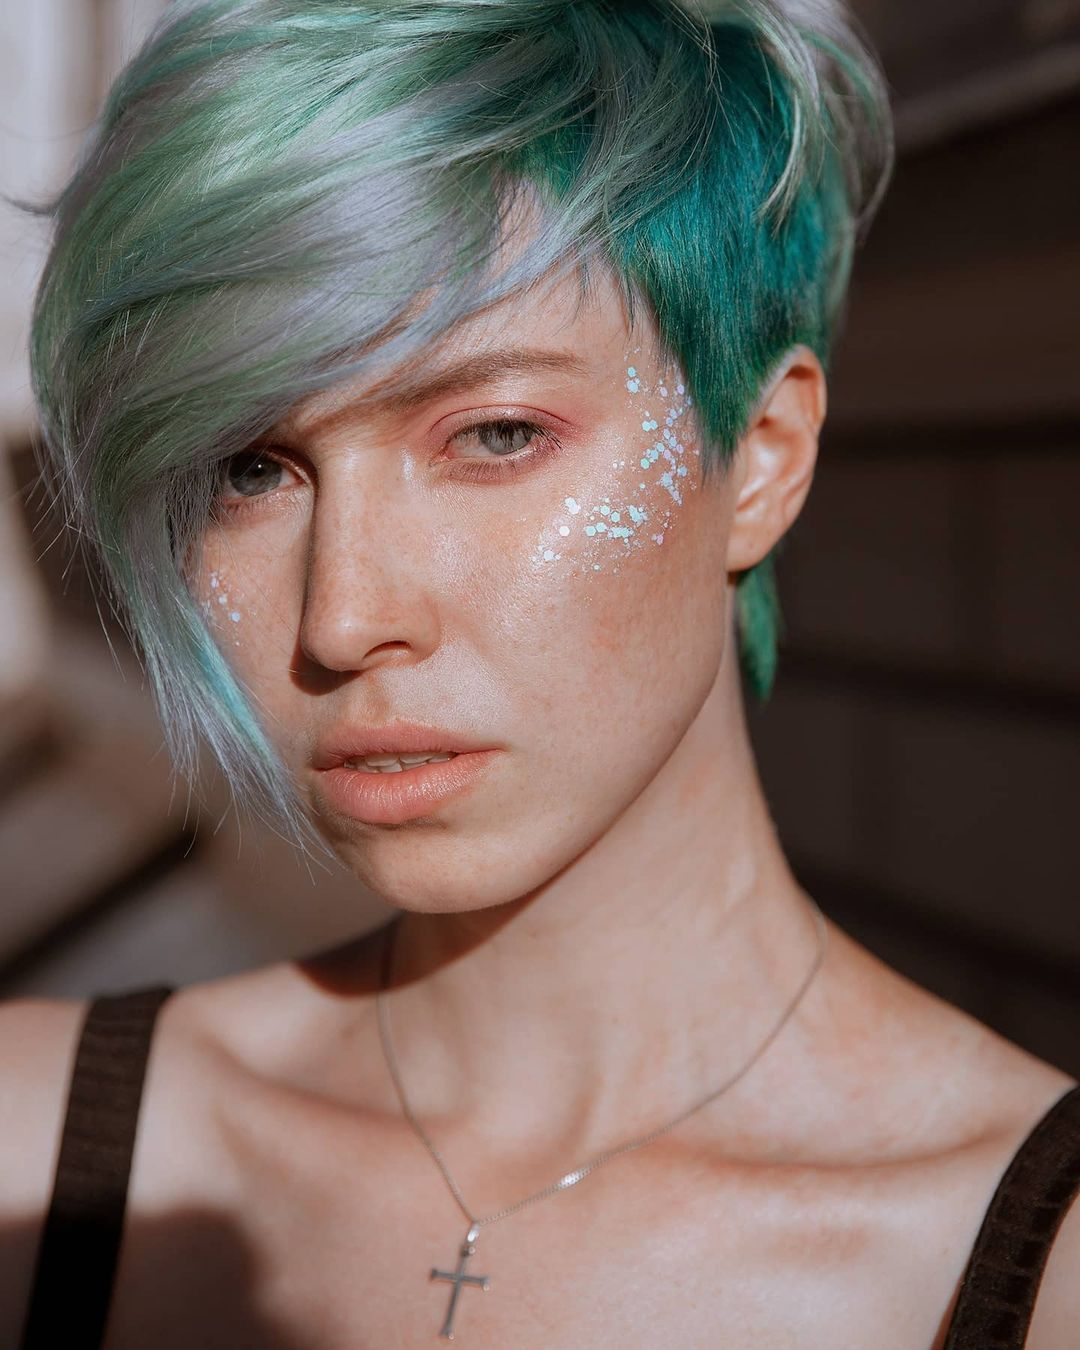 Hair Color Trends for Short Hair - 2021s Short Haircuts and Hairstyle Ideas